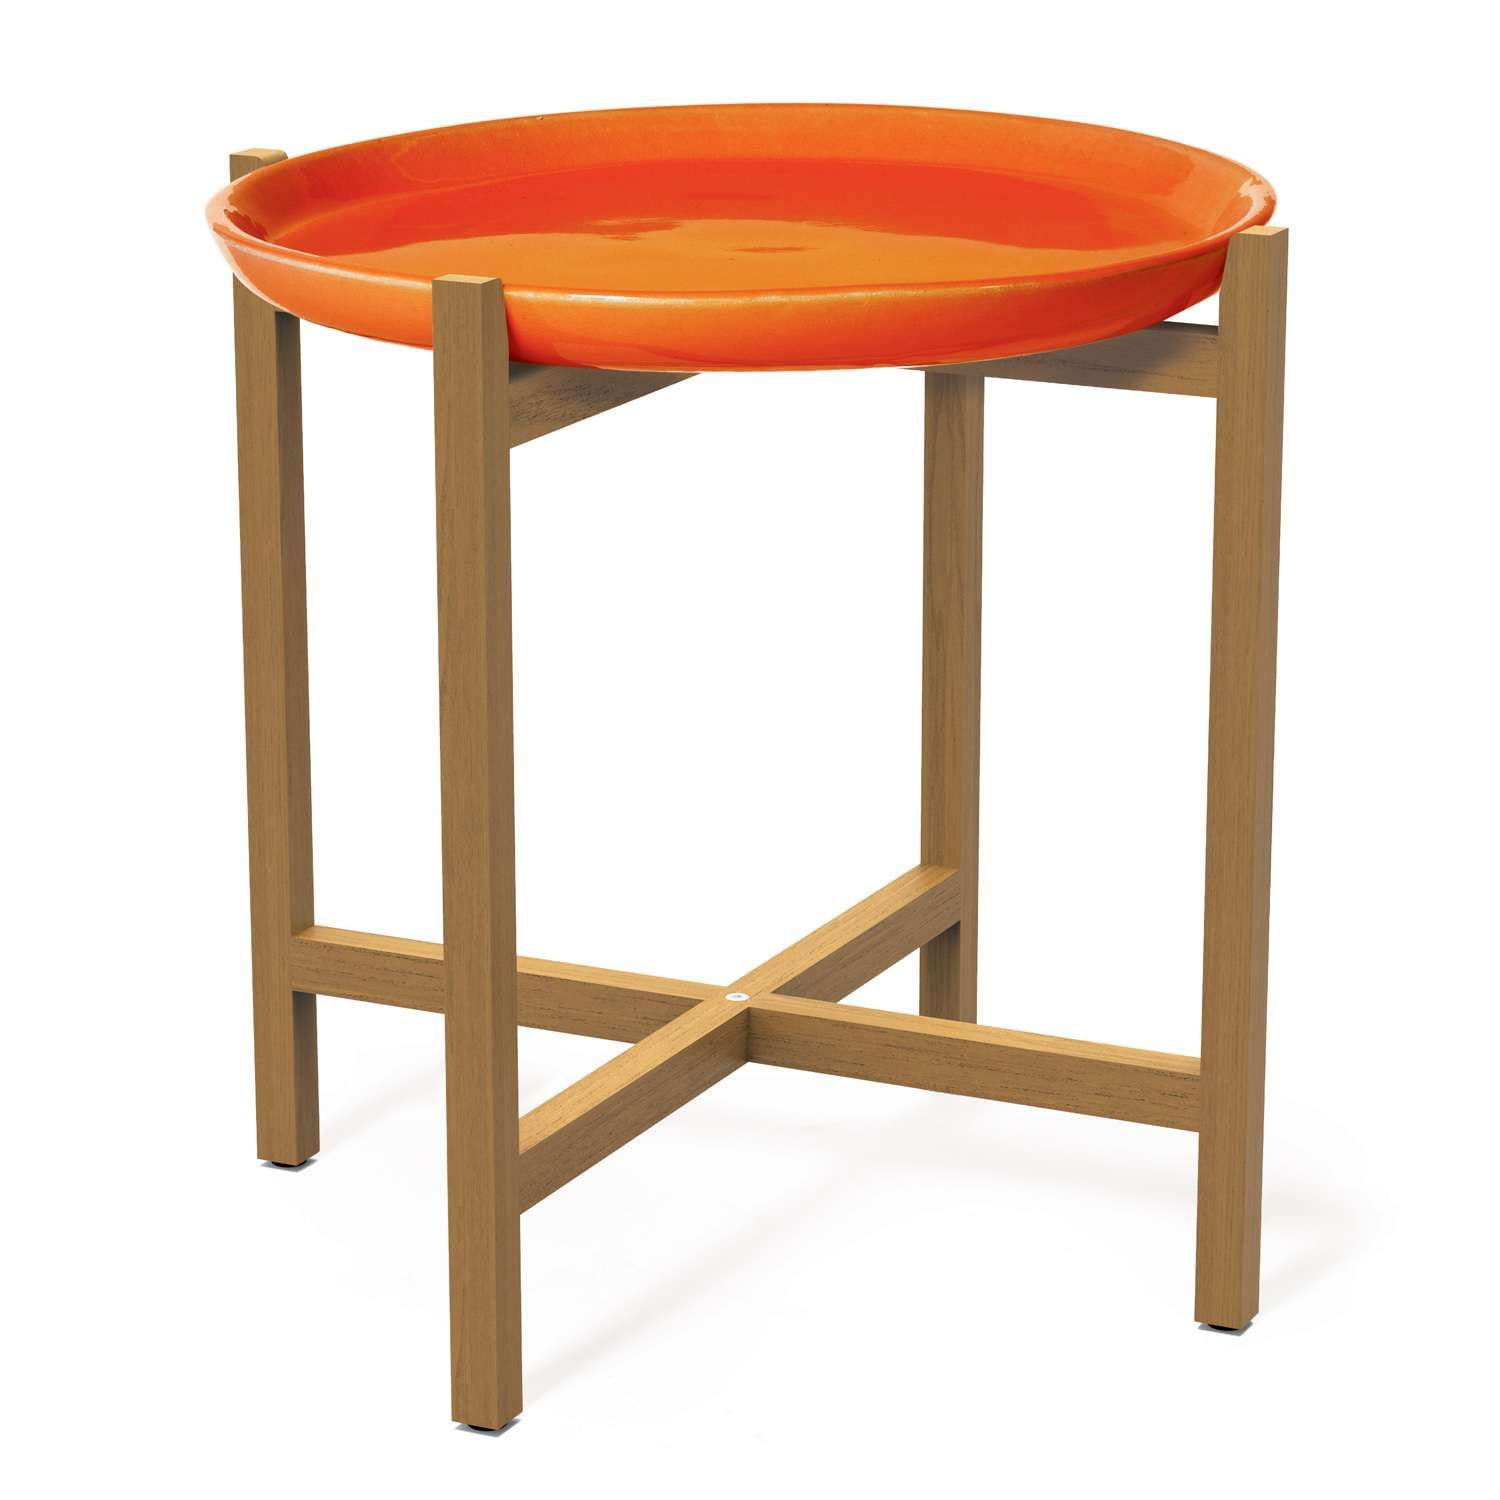 ibis accent table plant stands outdoor side modern tables orange ceramic furniture dining screw legs very small occasional gold end hall console with drawers ashley sofa corner